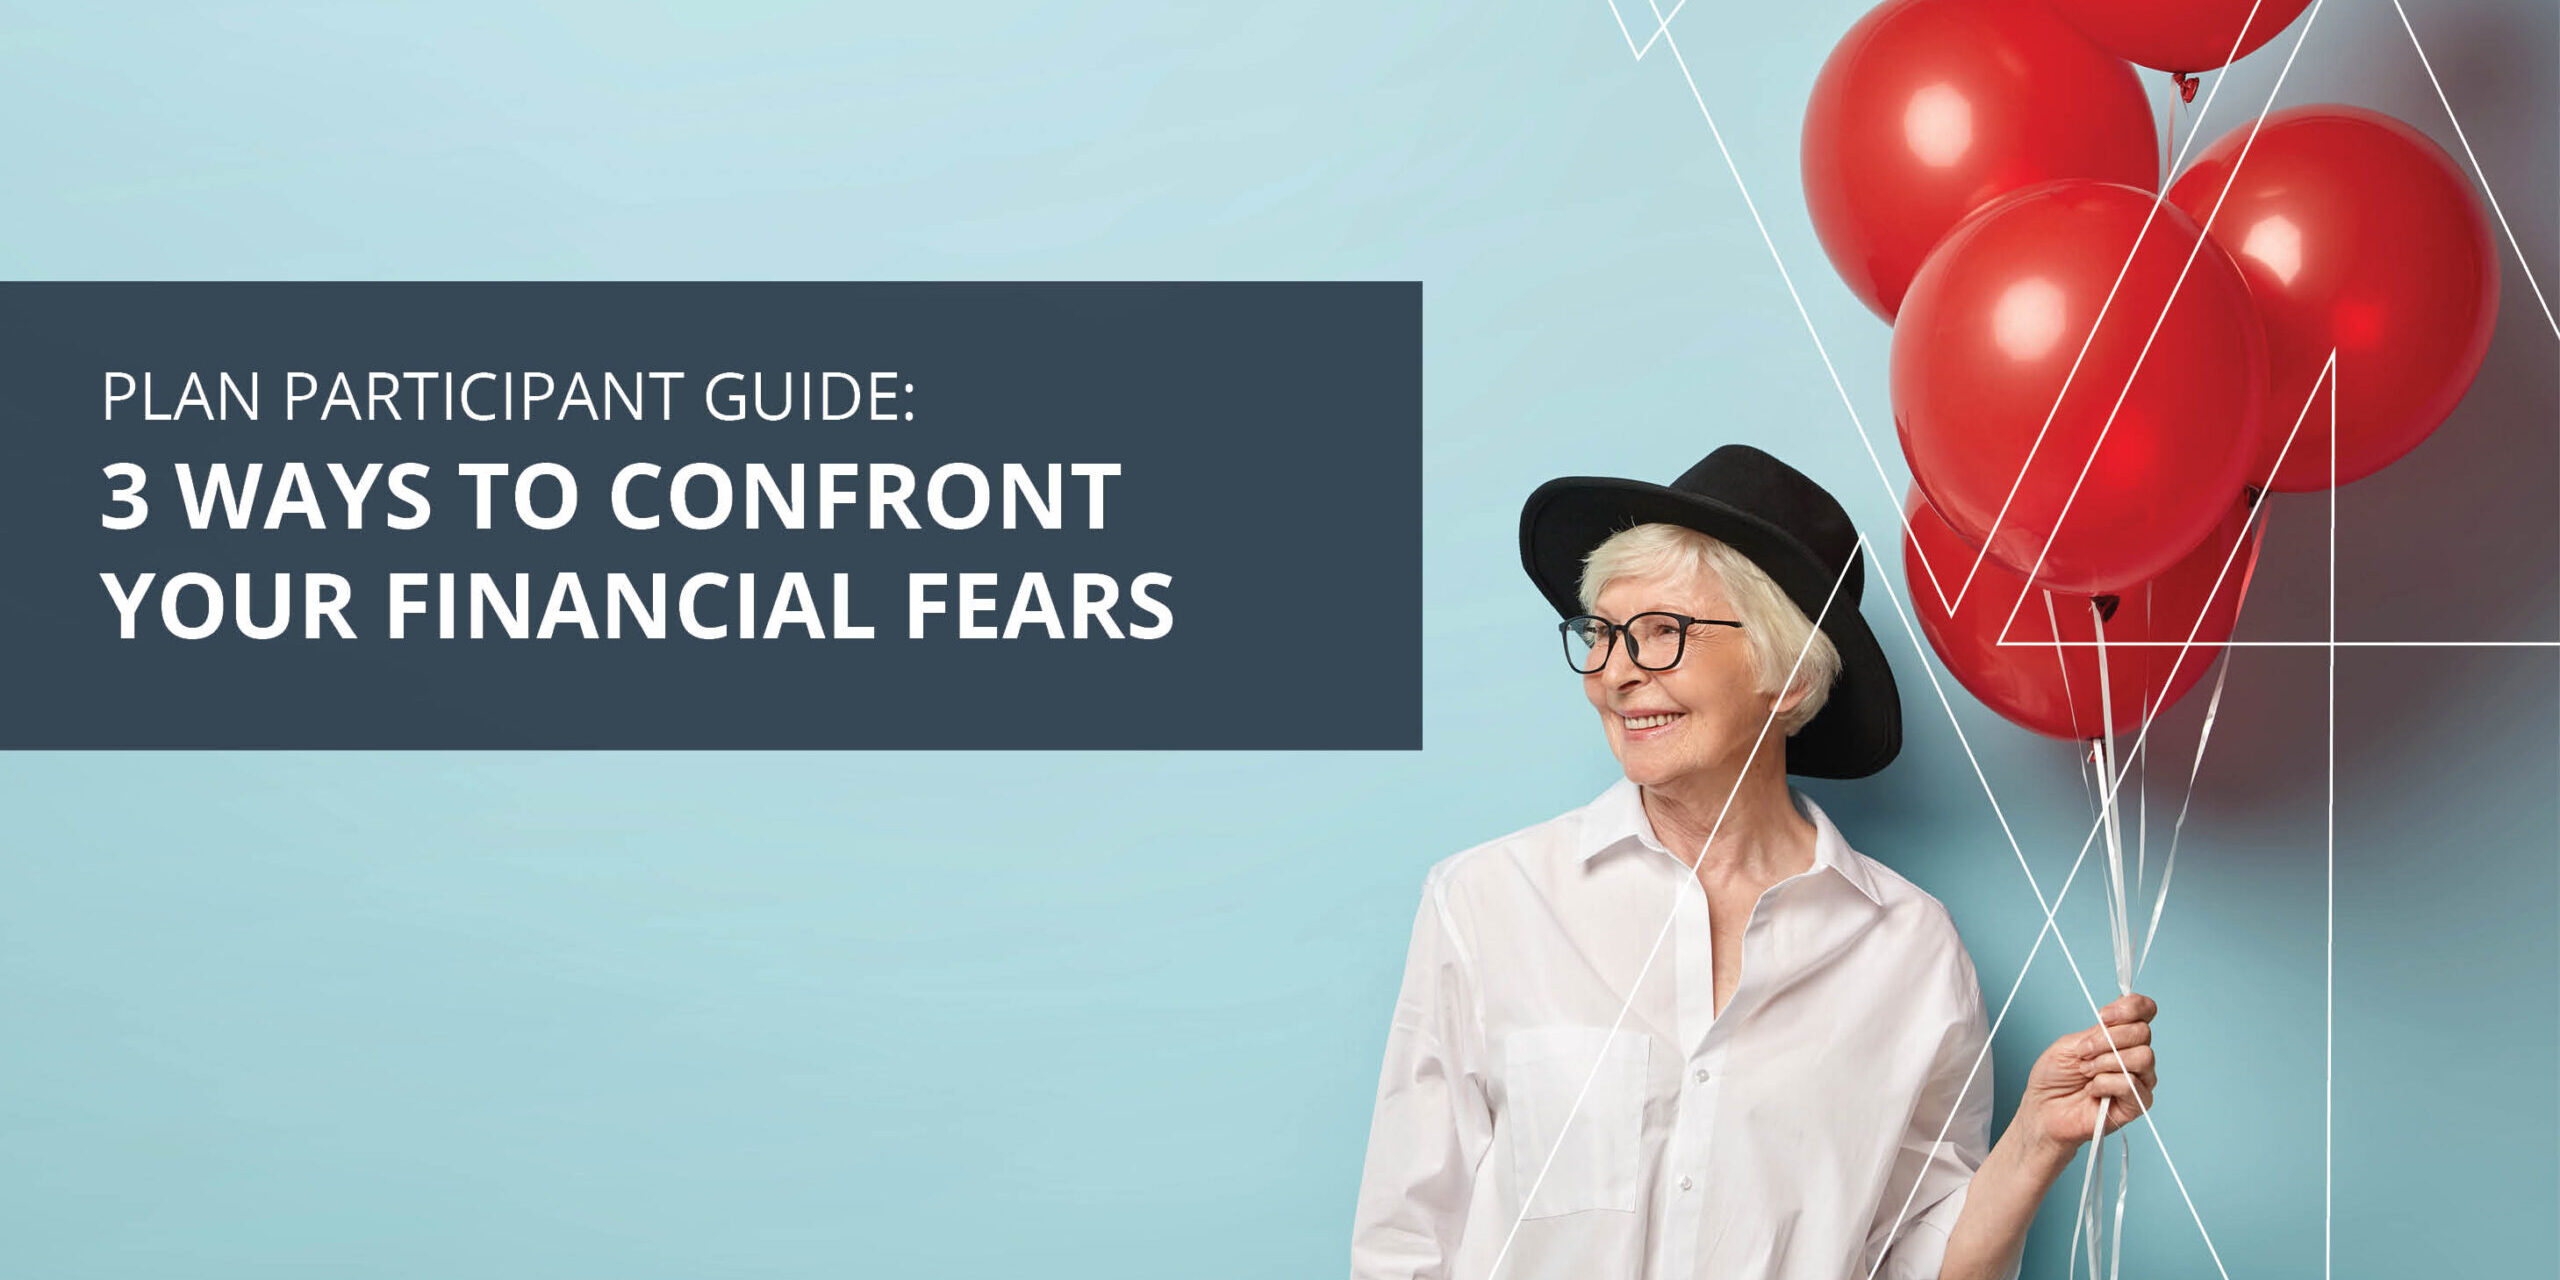 Headline Image - 3 Ways to Confront Your Financial Fears